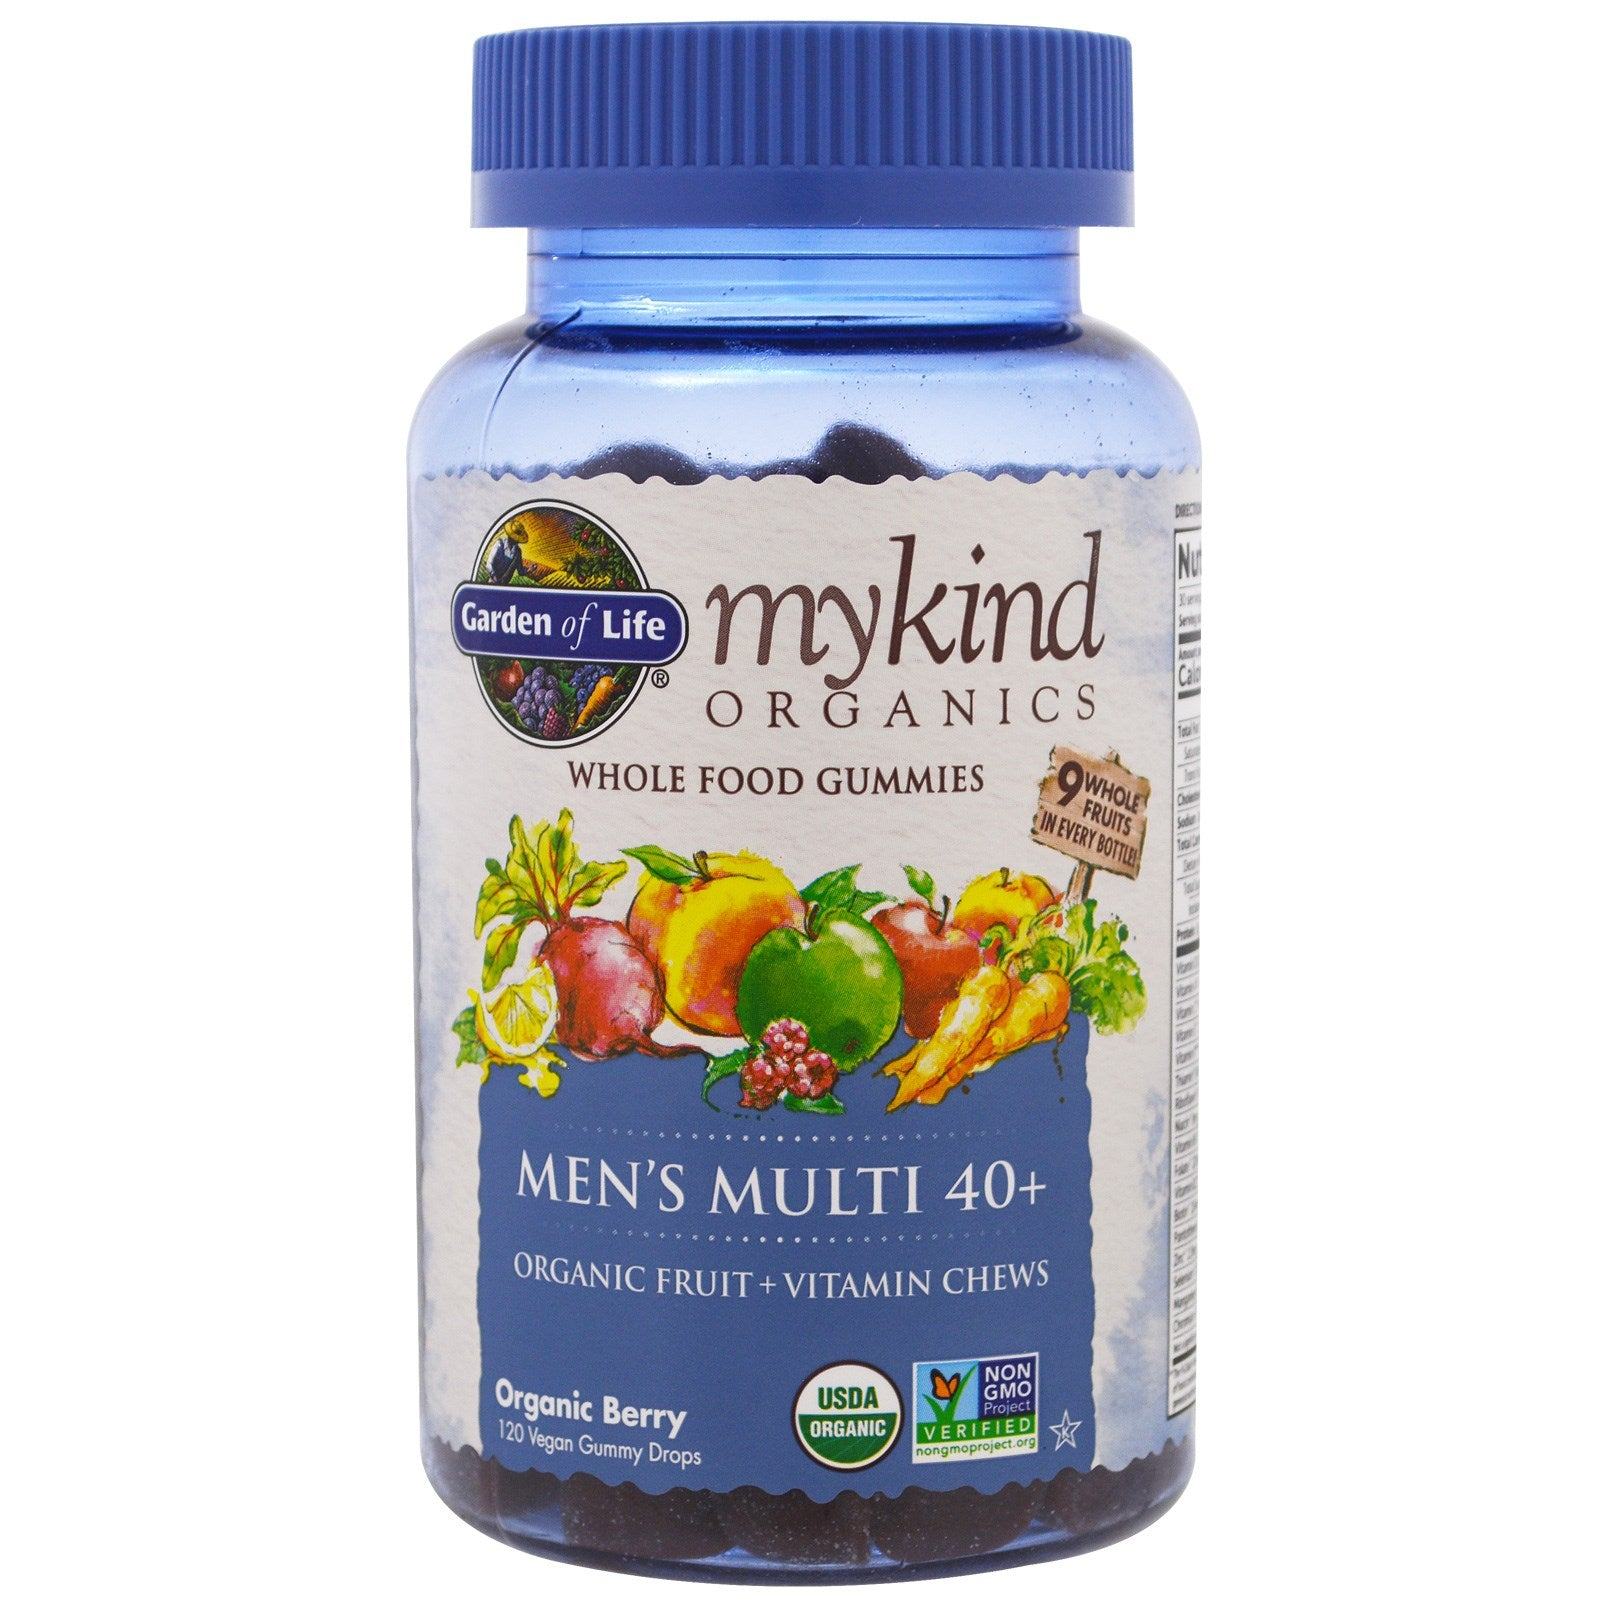 Garden of Life mykind Organics Men's 40 Multi Gummy, 120 gummies.-NaturesWisdom